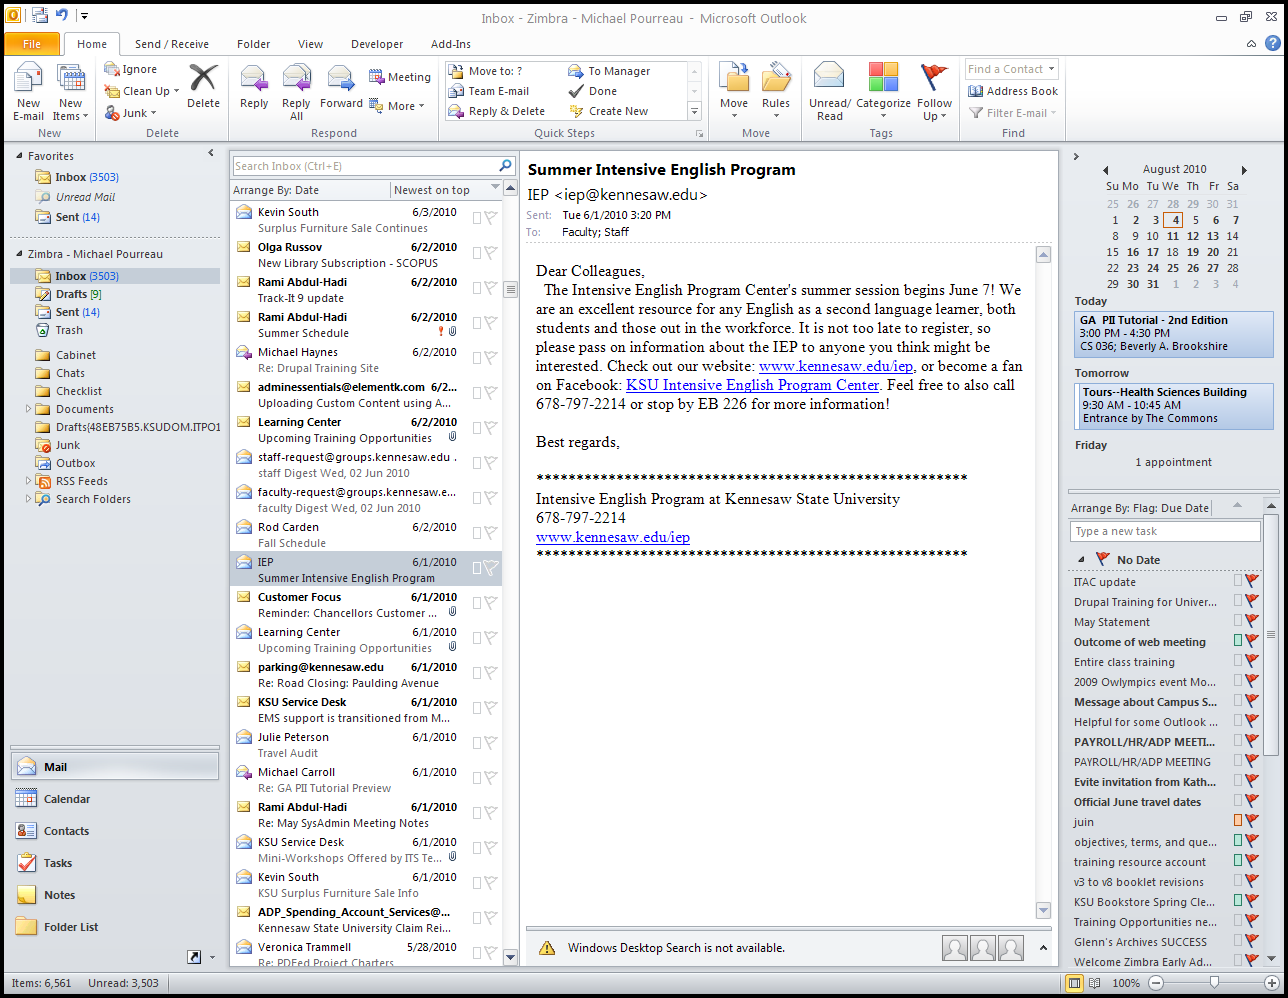 Introduction Using Microsoft Outlook 2010 as a desktop client for Zimbra gives the end-user added functionality not available in Zimbra, due to the fact that the latter is a web-based application.